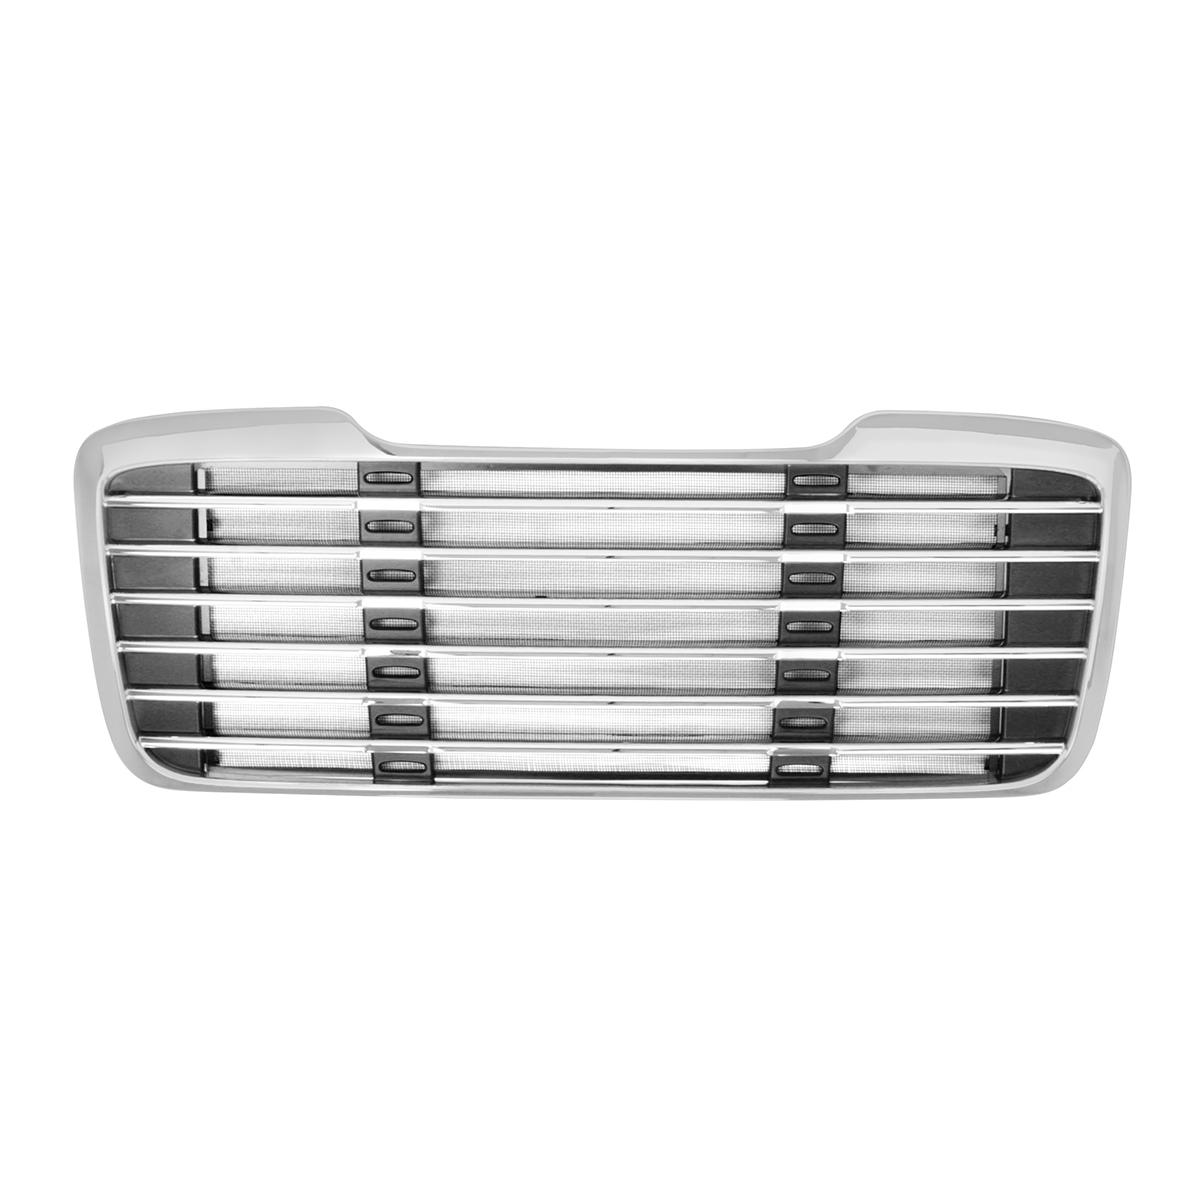 89305 Chrome Plastic Grille with Bug Screen for FL M2 Model